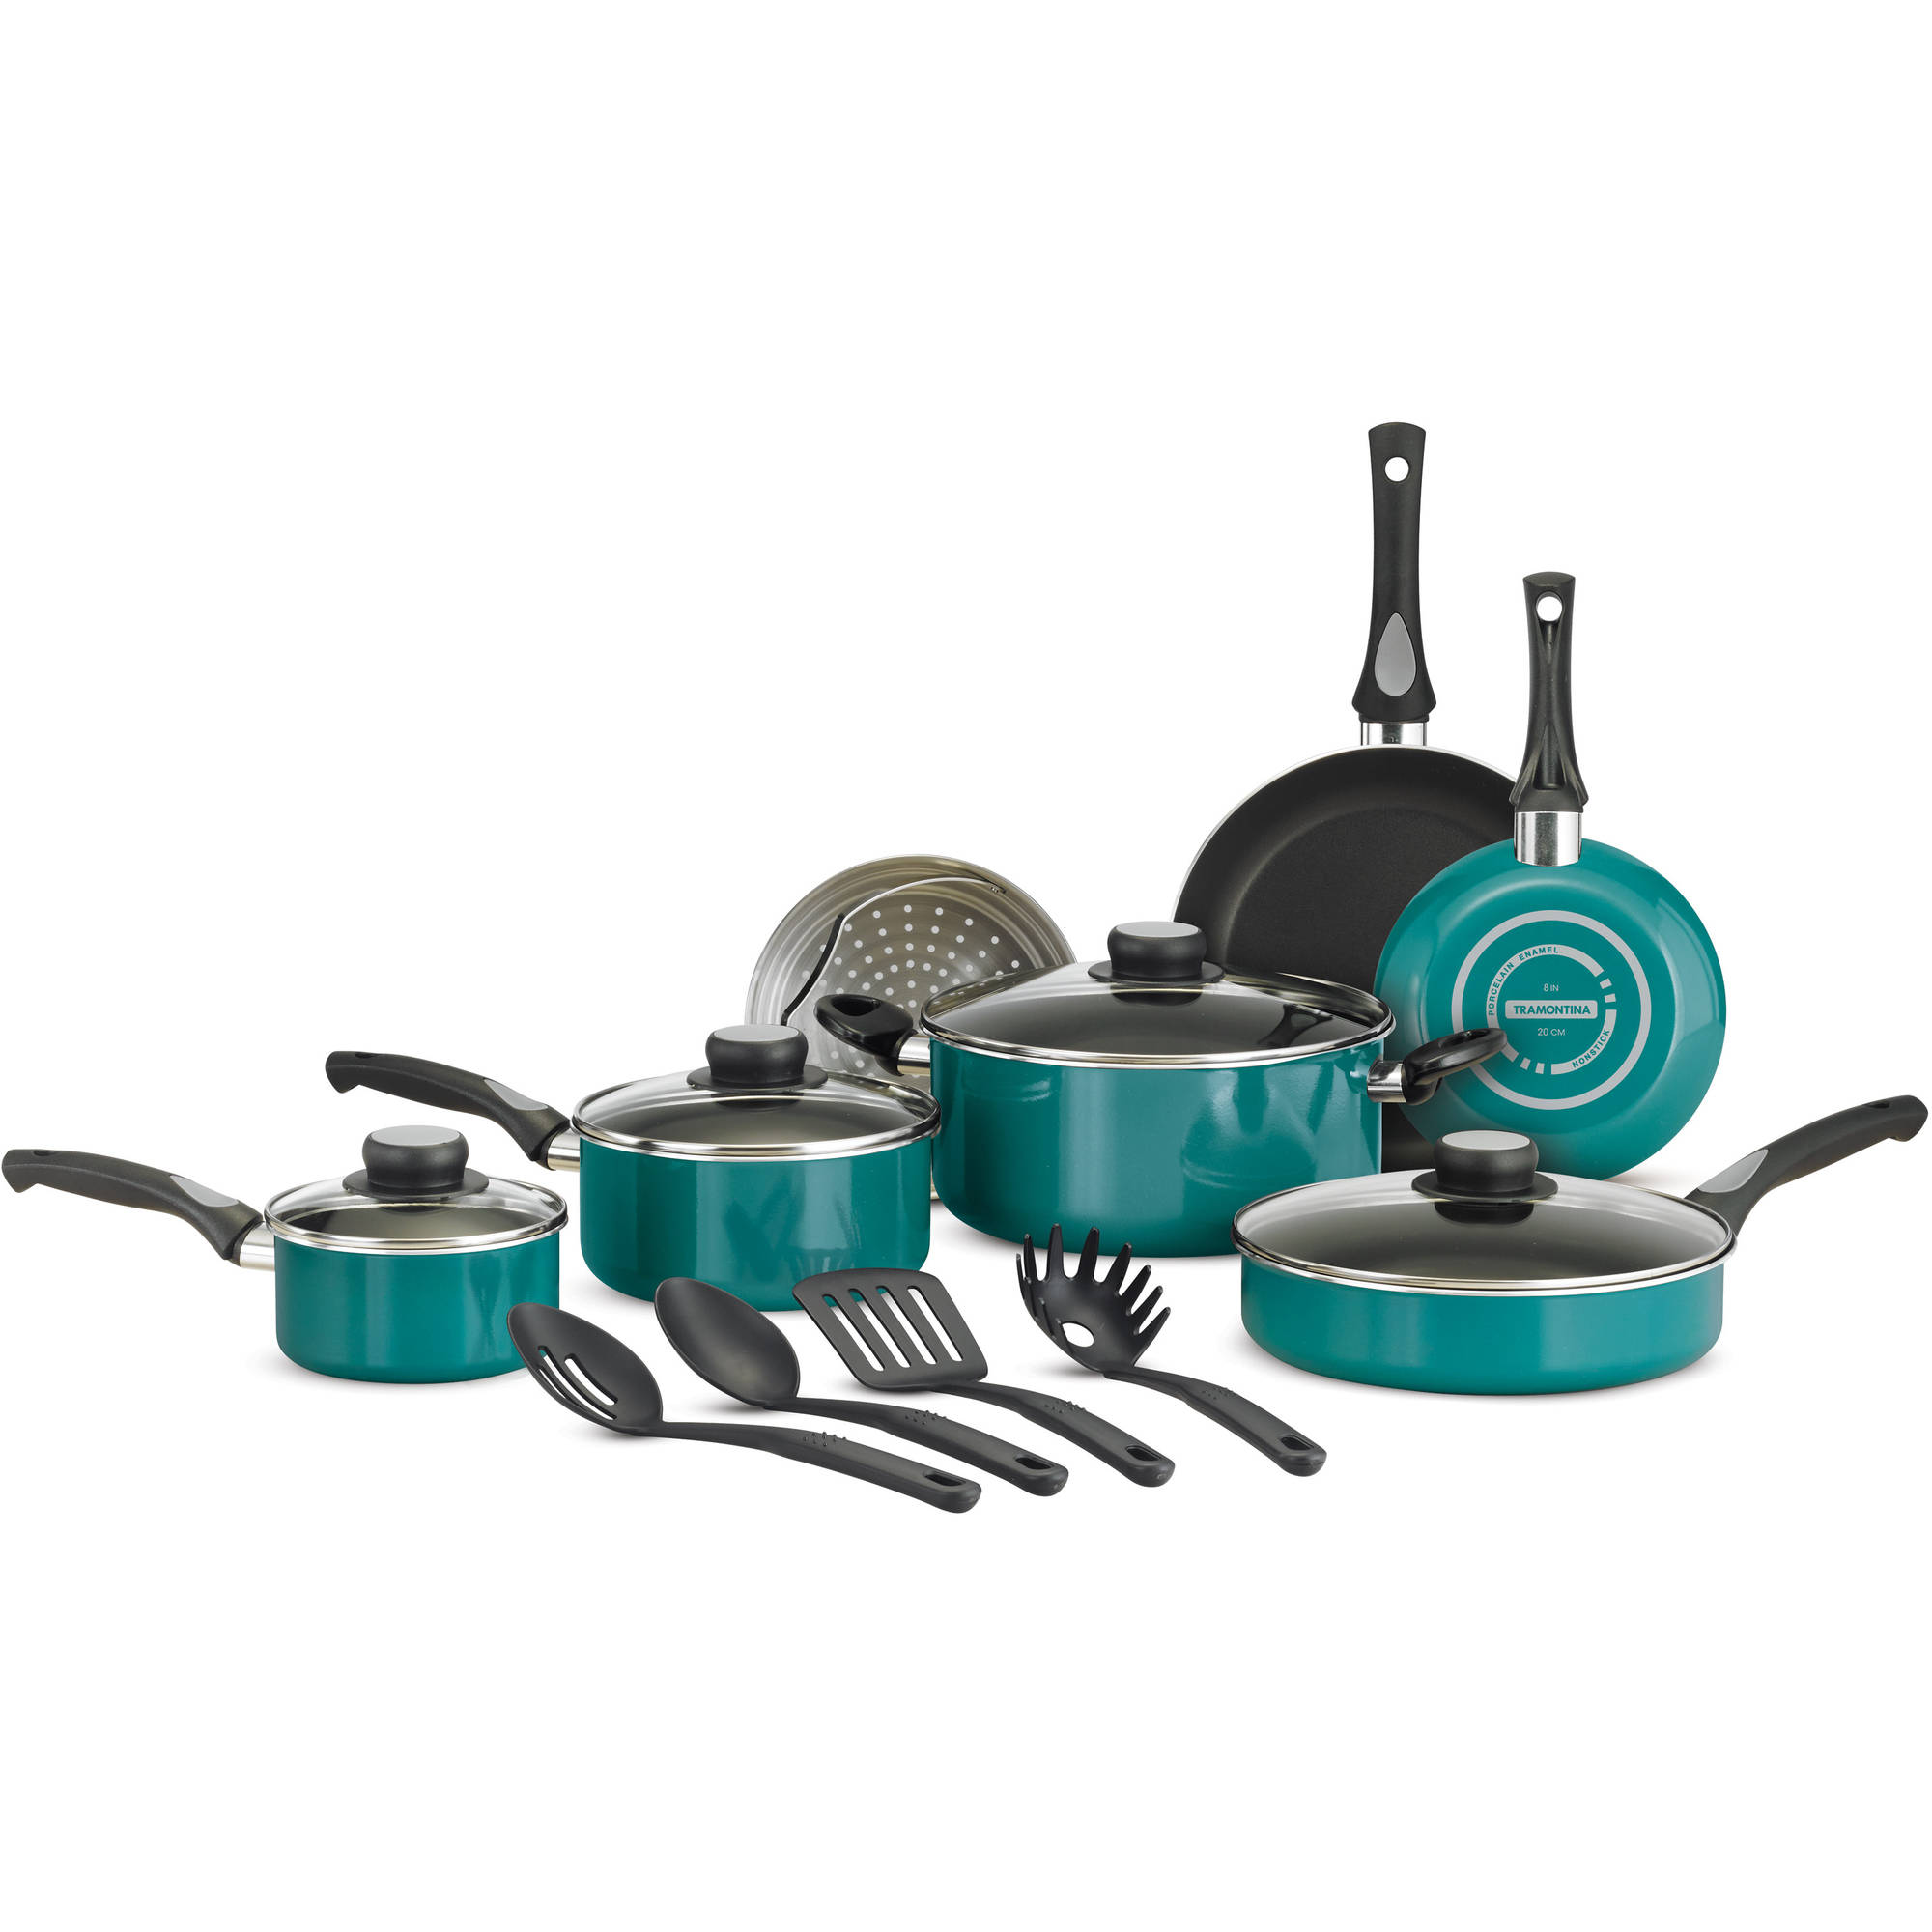 Tramontina 15 Piece Select Non-Stick Cookware Set